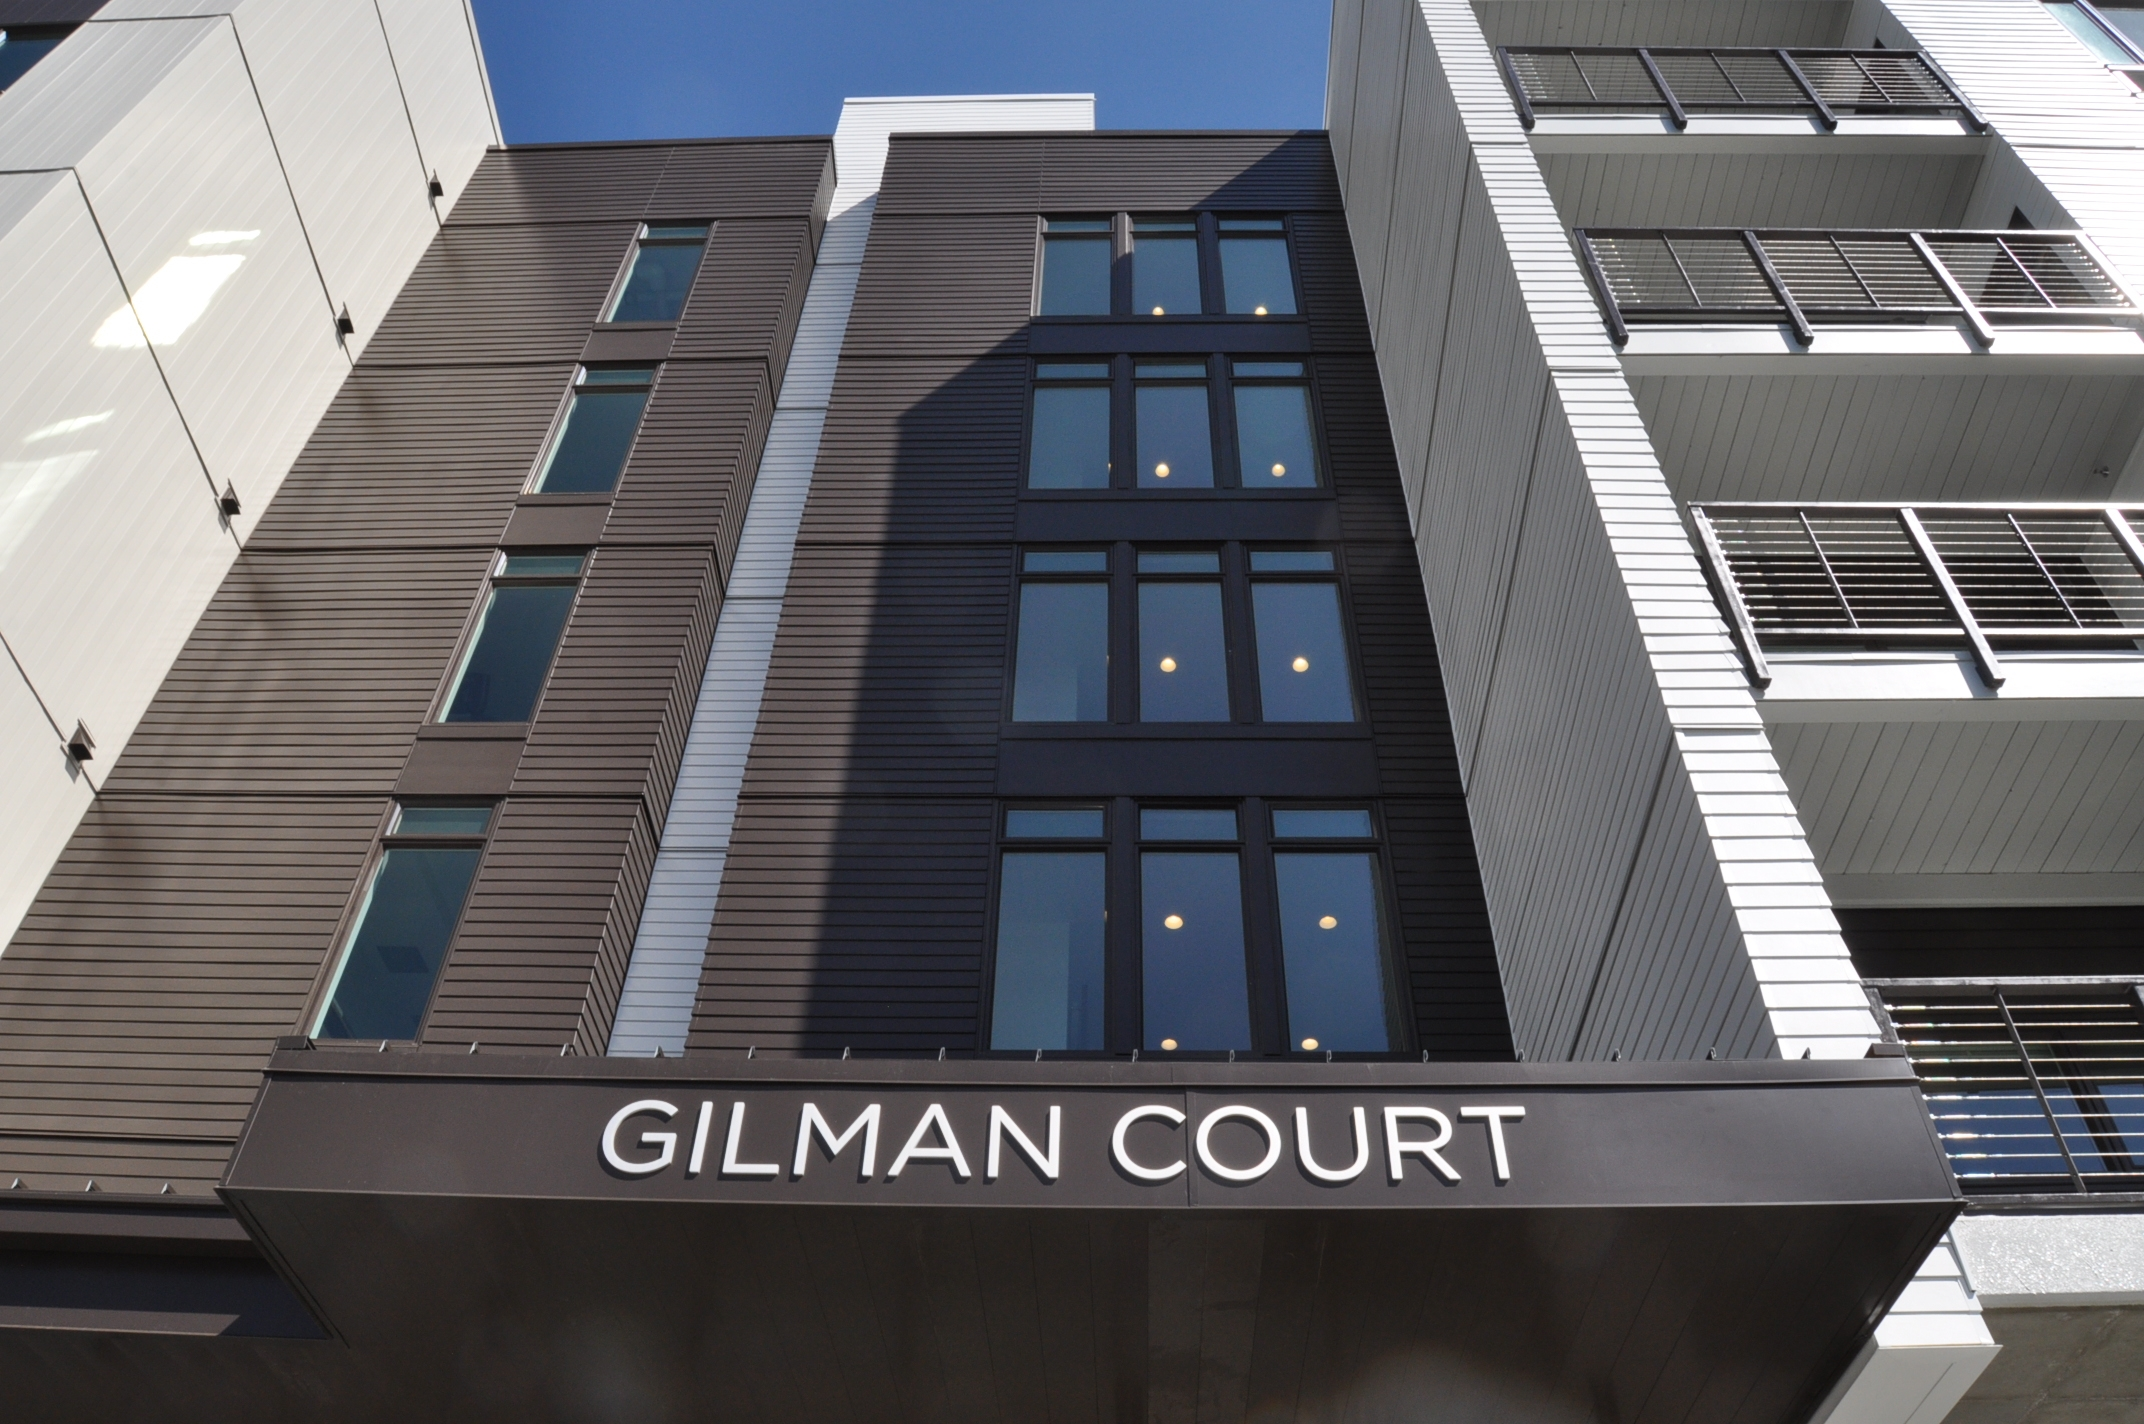 Copy of GILMAN COURT